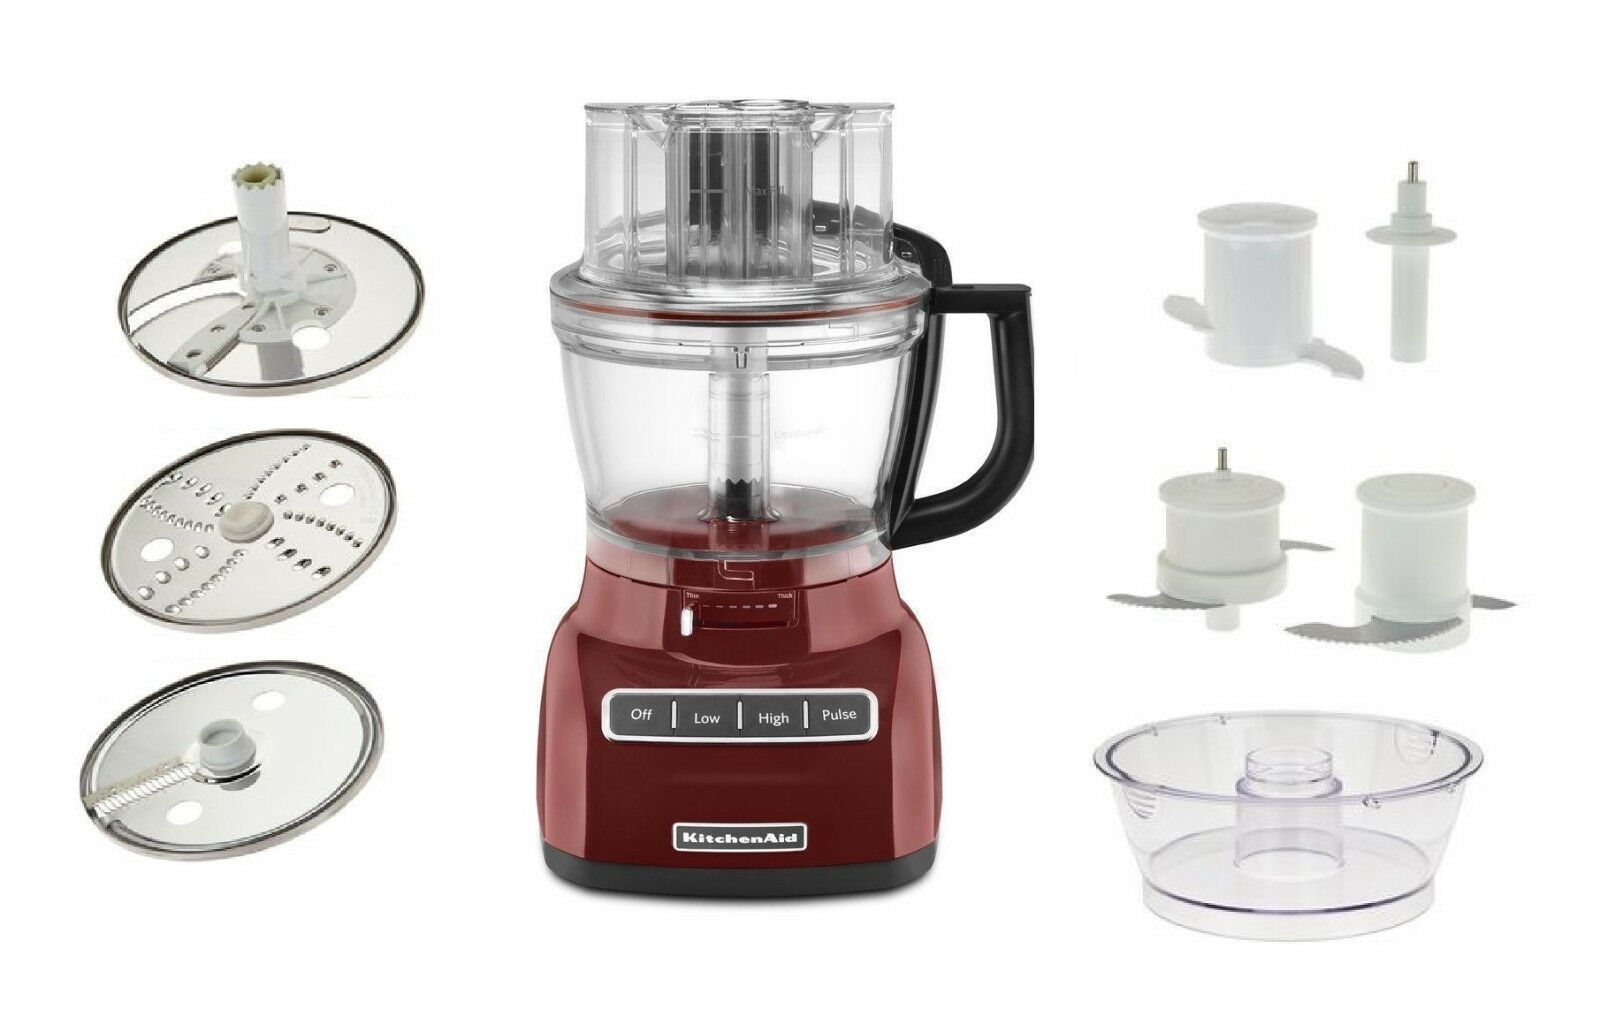 Kitchenaid Kfp0930 9cup Wide Mouth Food Processor Large Exact